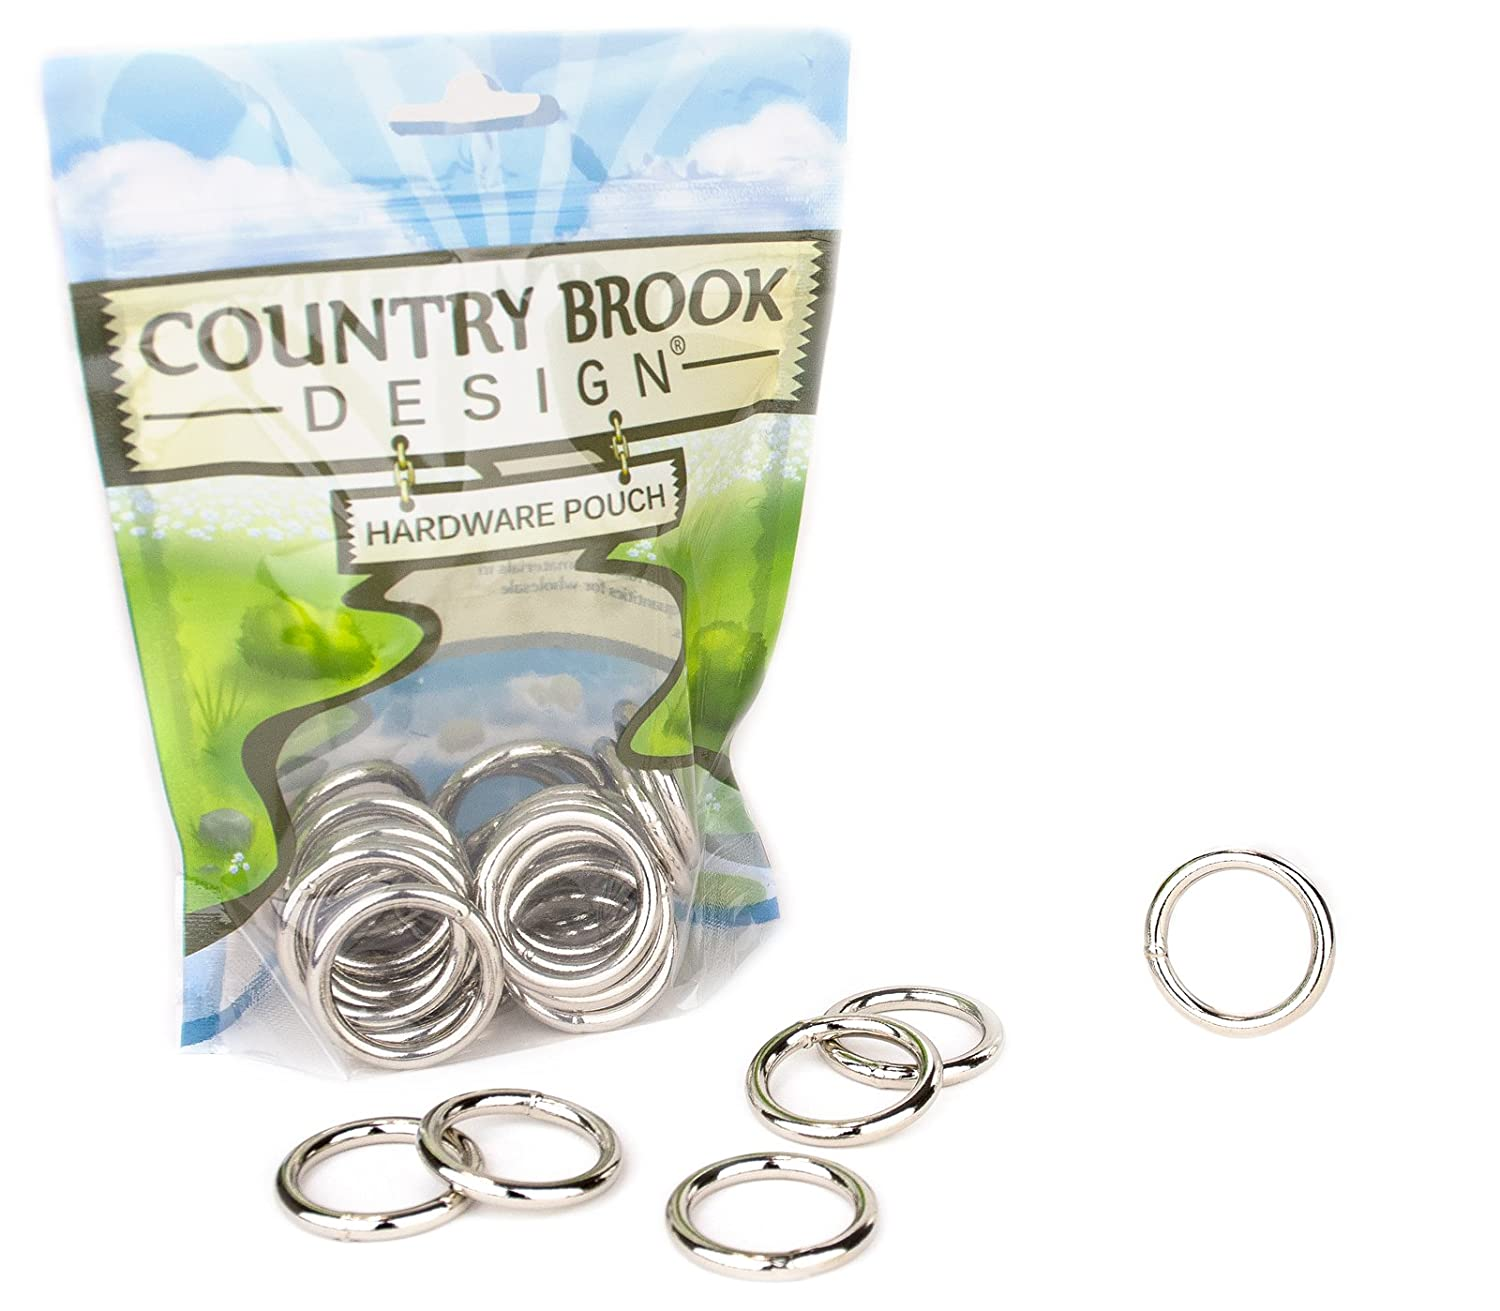 Country Brook Design 50 1 Inch Welded Heavy O-Rings ORW-NIC-1-50